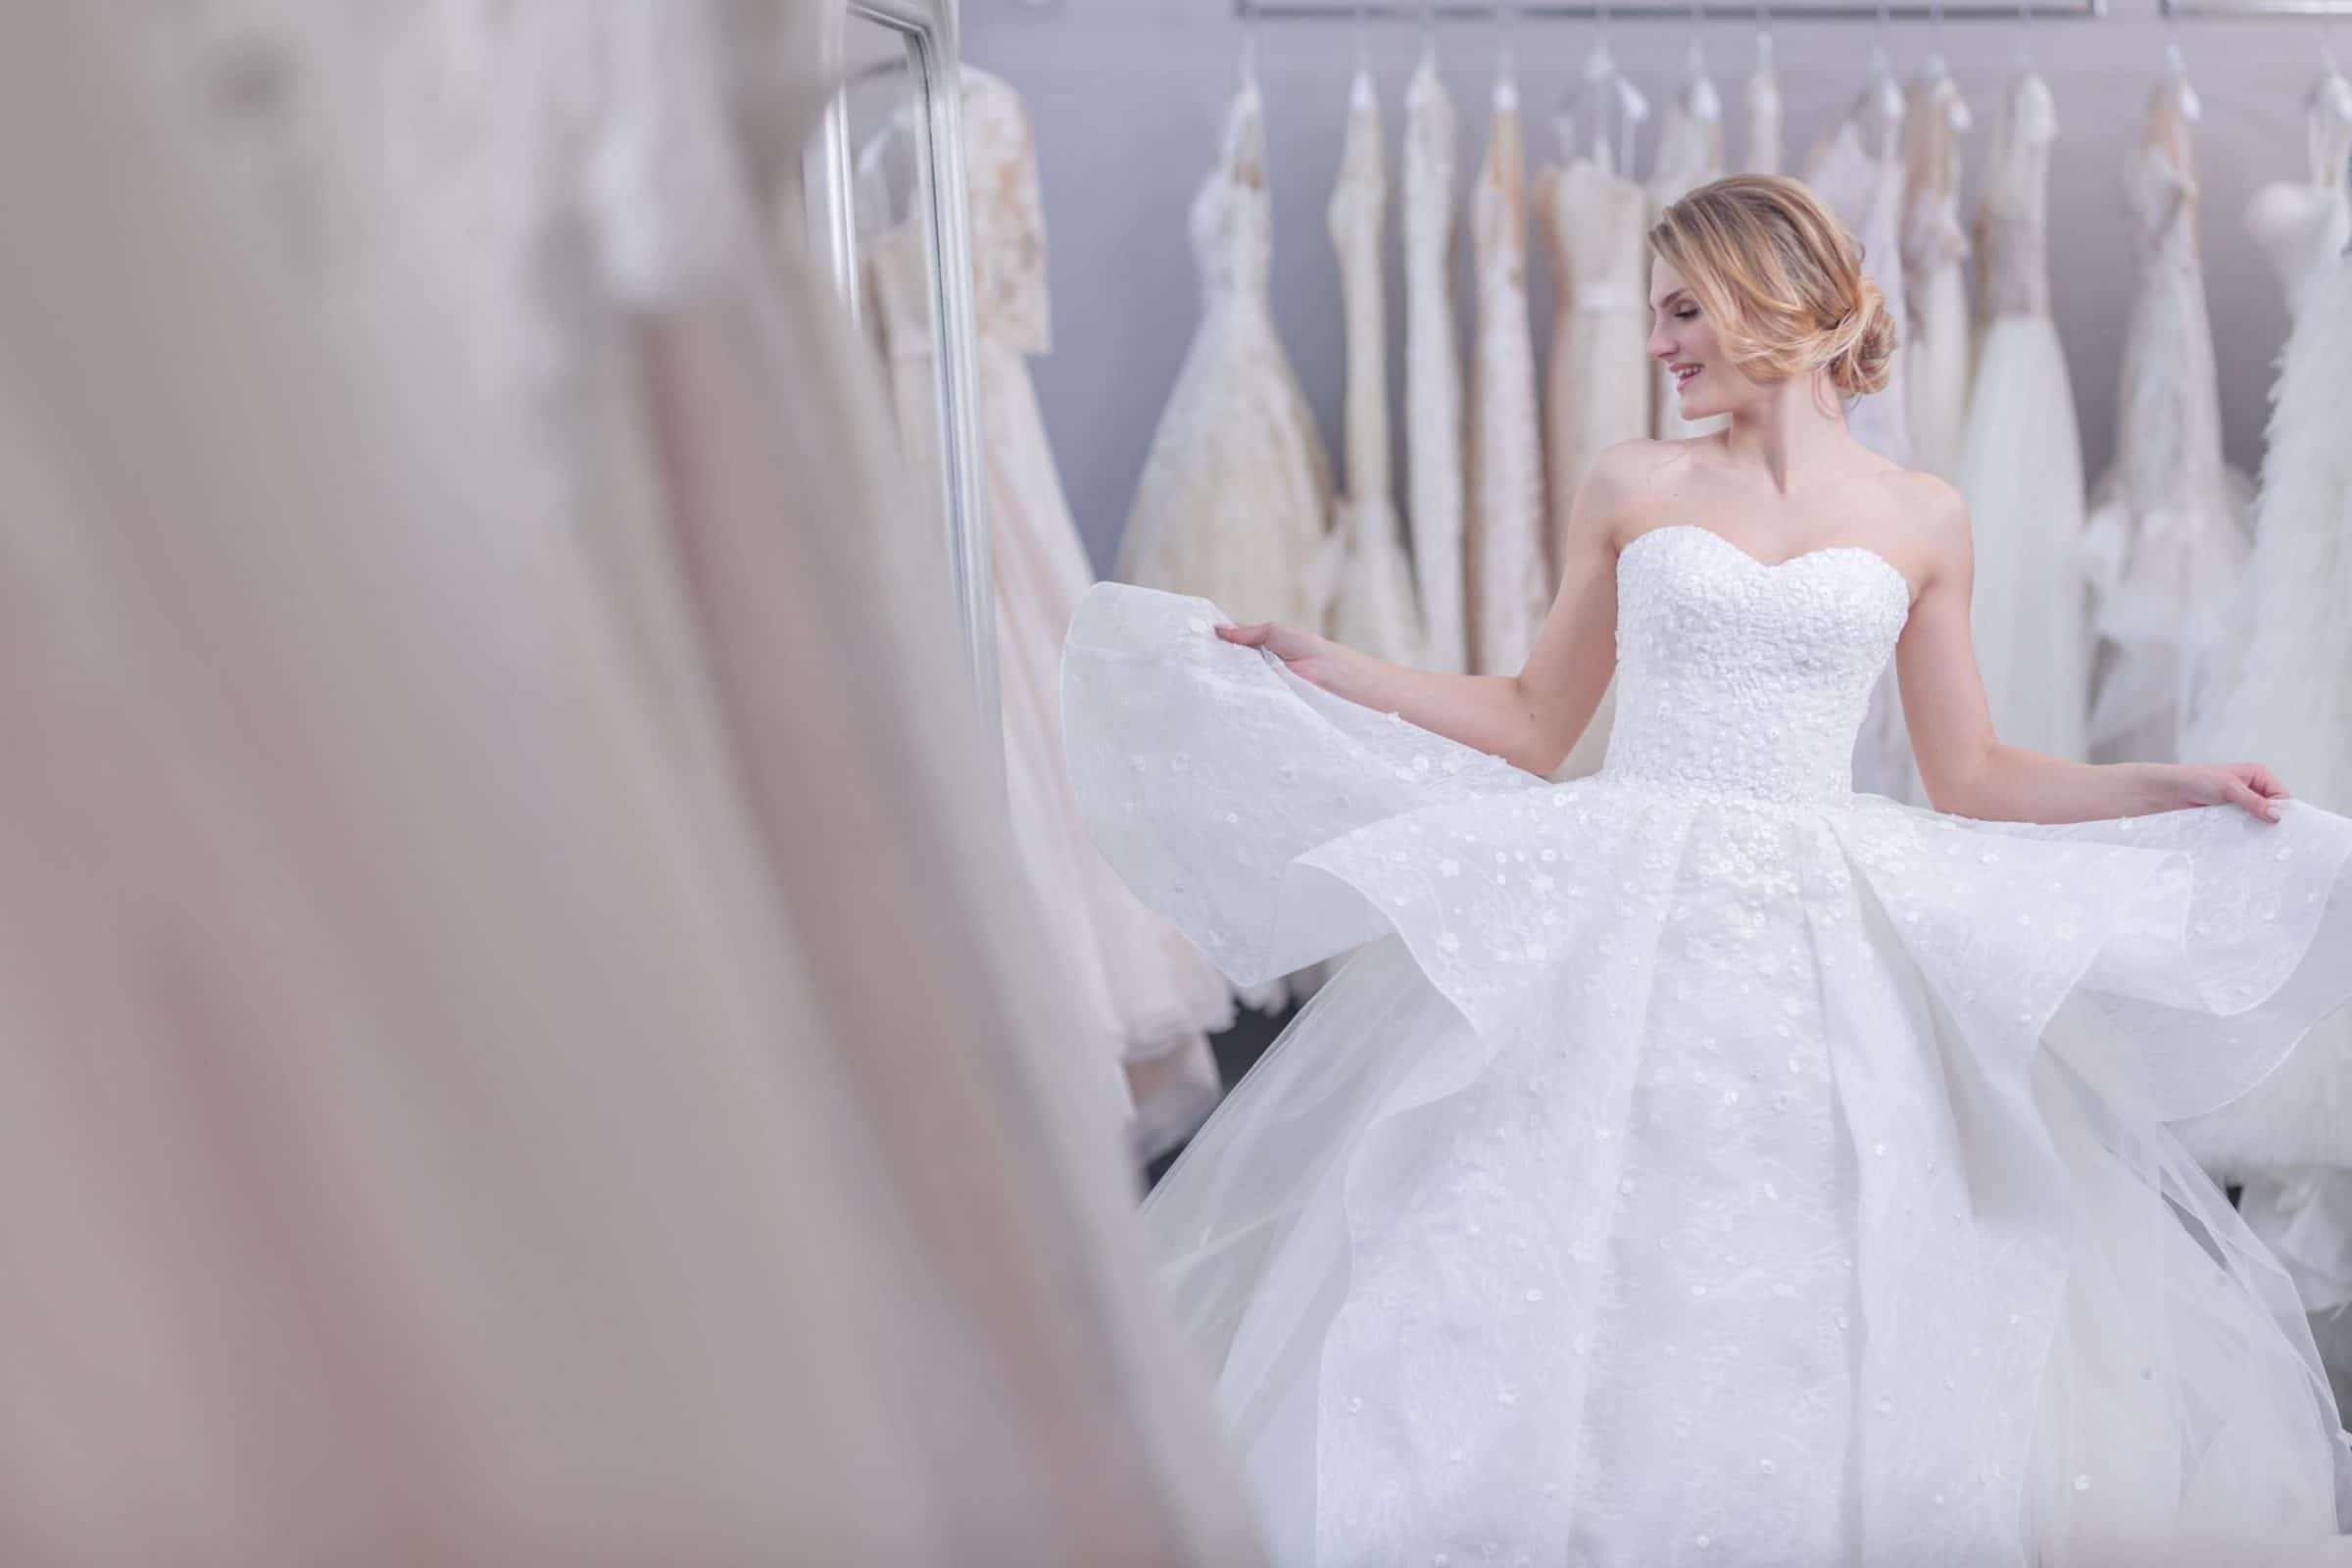 Tips to Finding the Perfect Dress